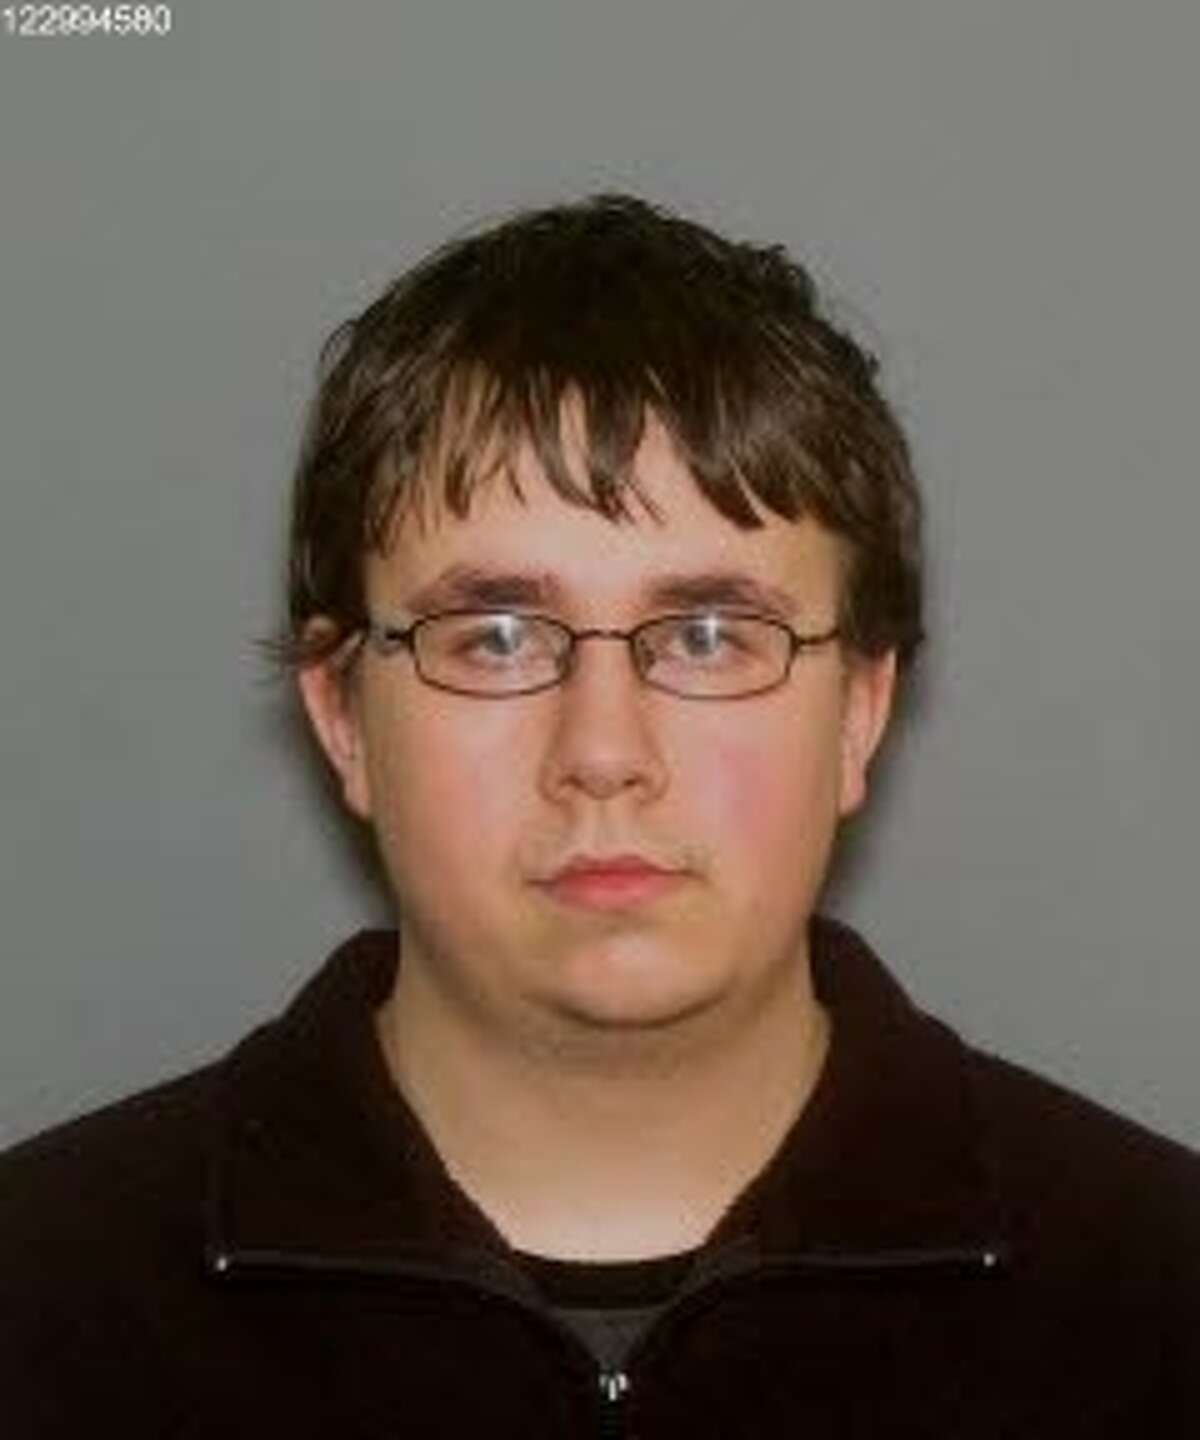 Daniel Grinnell (State Police photo)